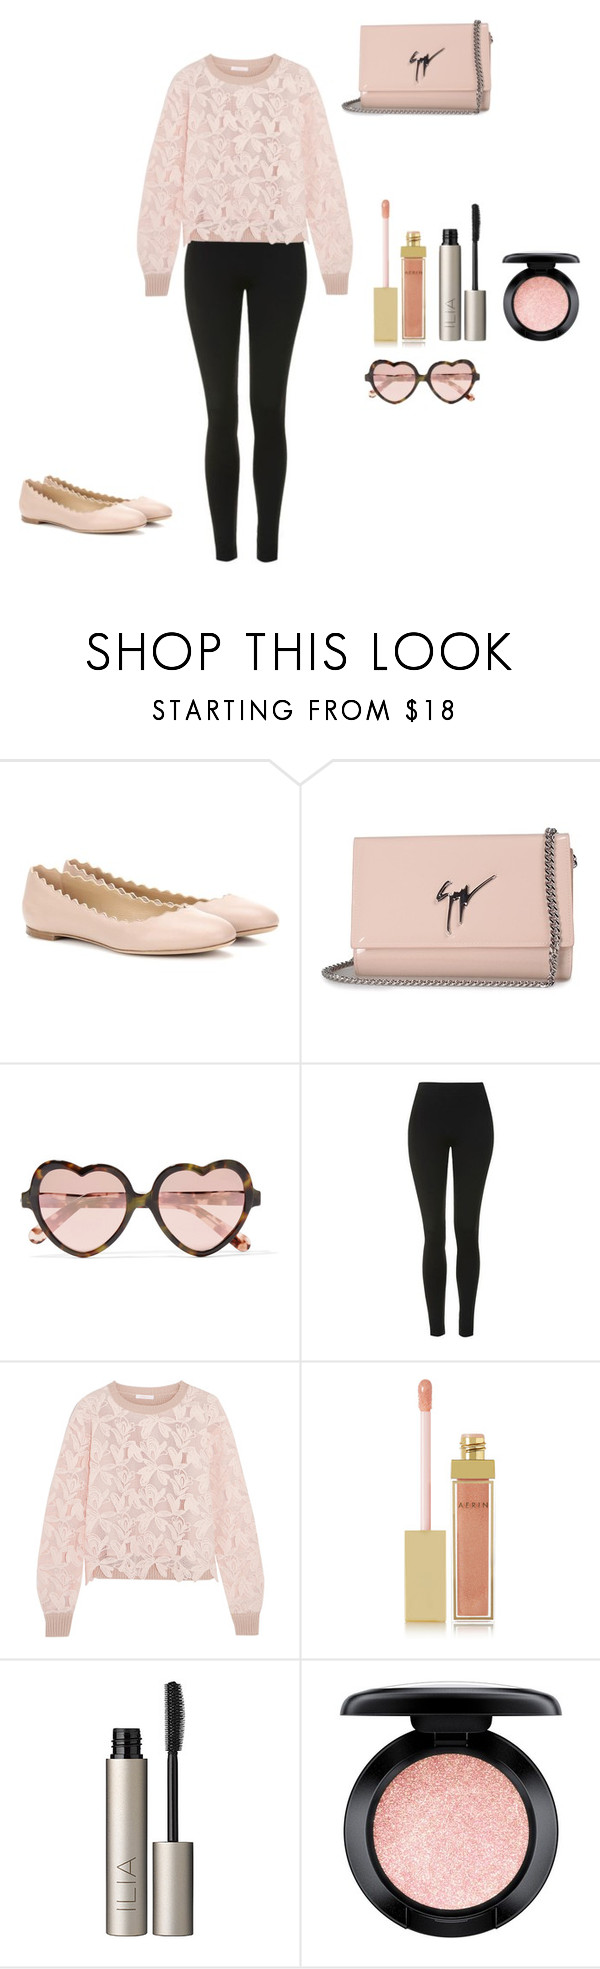 """""""V DAY"""" by mullinsnicole ❤ liked on Polyvore featuring Chloé, Giuseppe Zanotti, Cutler and Gross, Topshop, See by Chloé, AERIN, Ilia and MAC Cosmetics"""